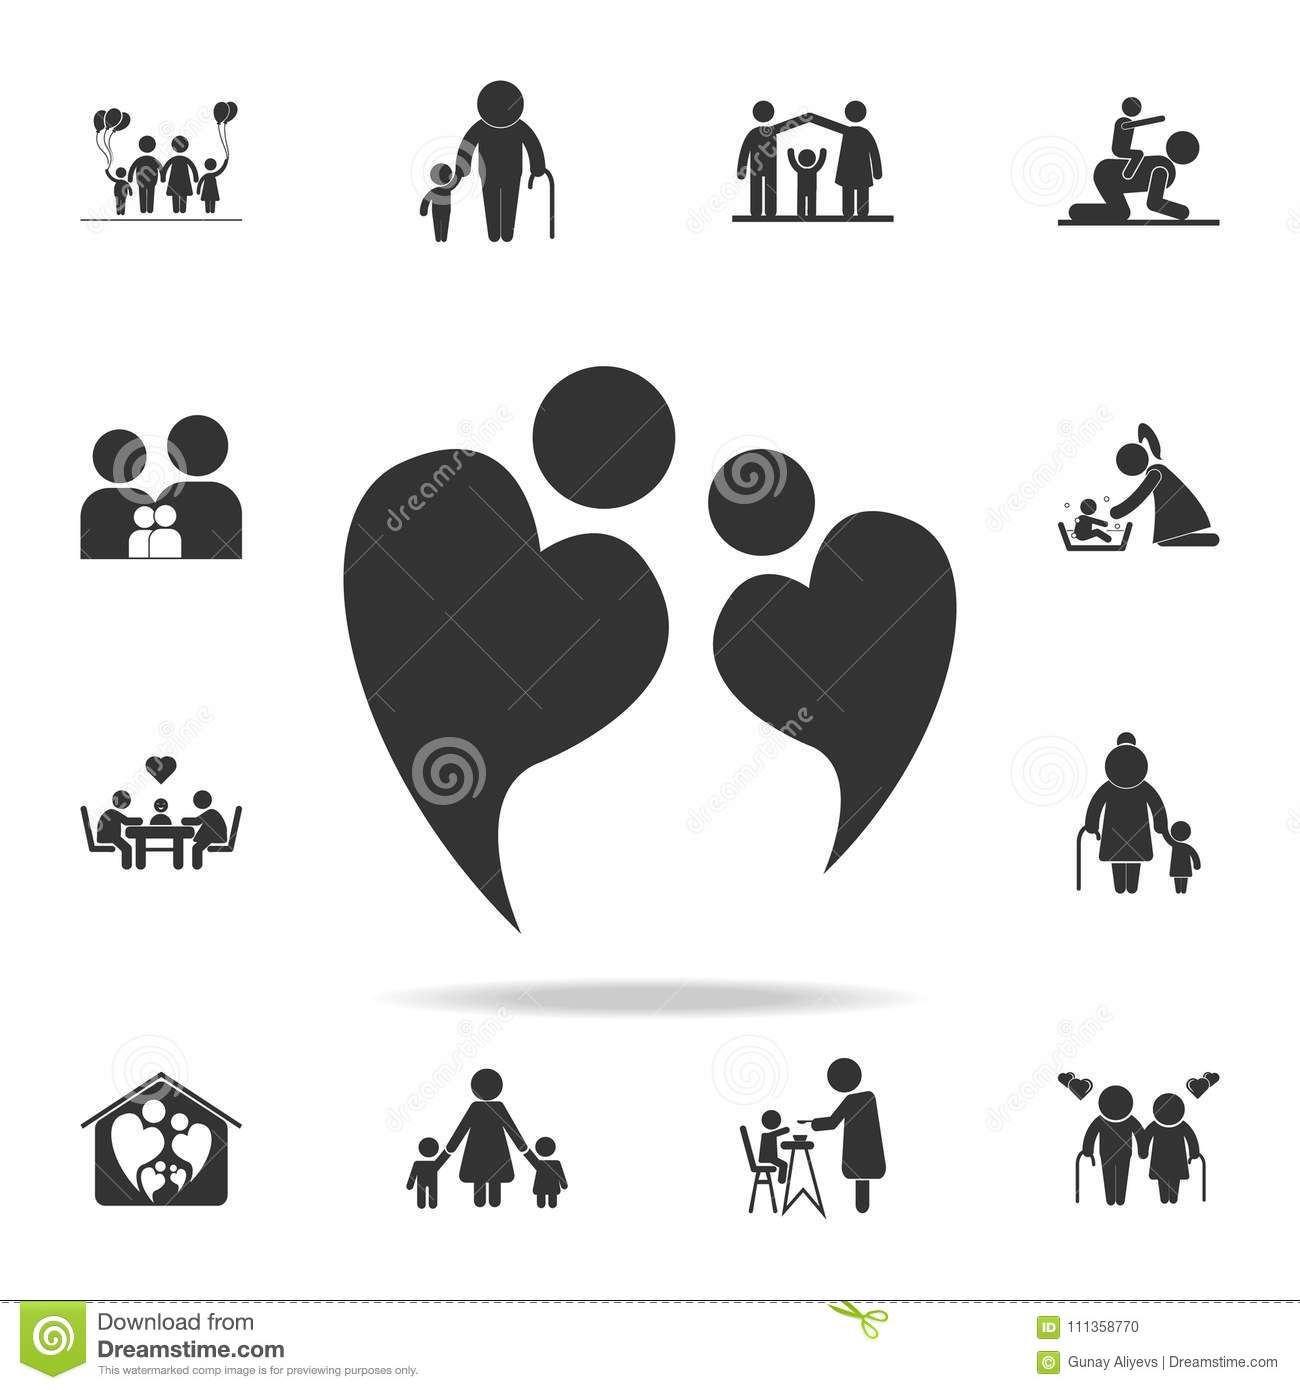 Two People In Love Forming Heart Symbol Icon Detailed Set Of Human